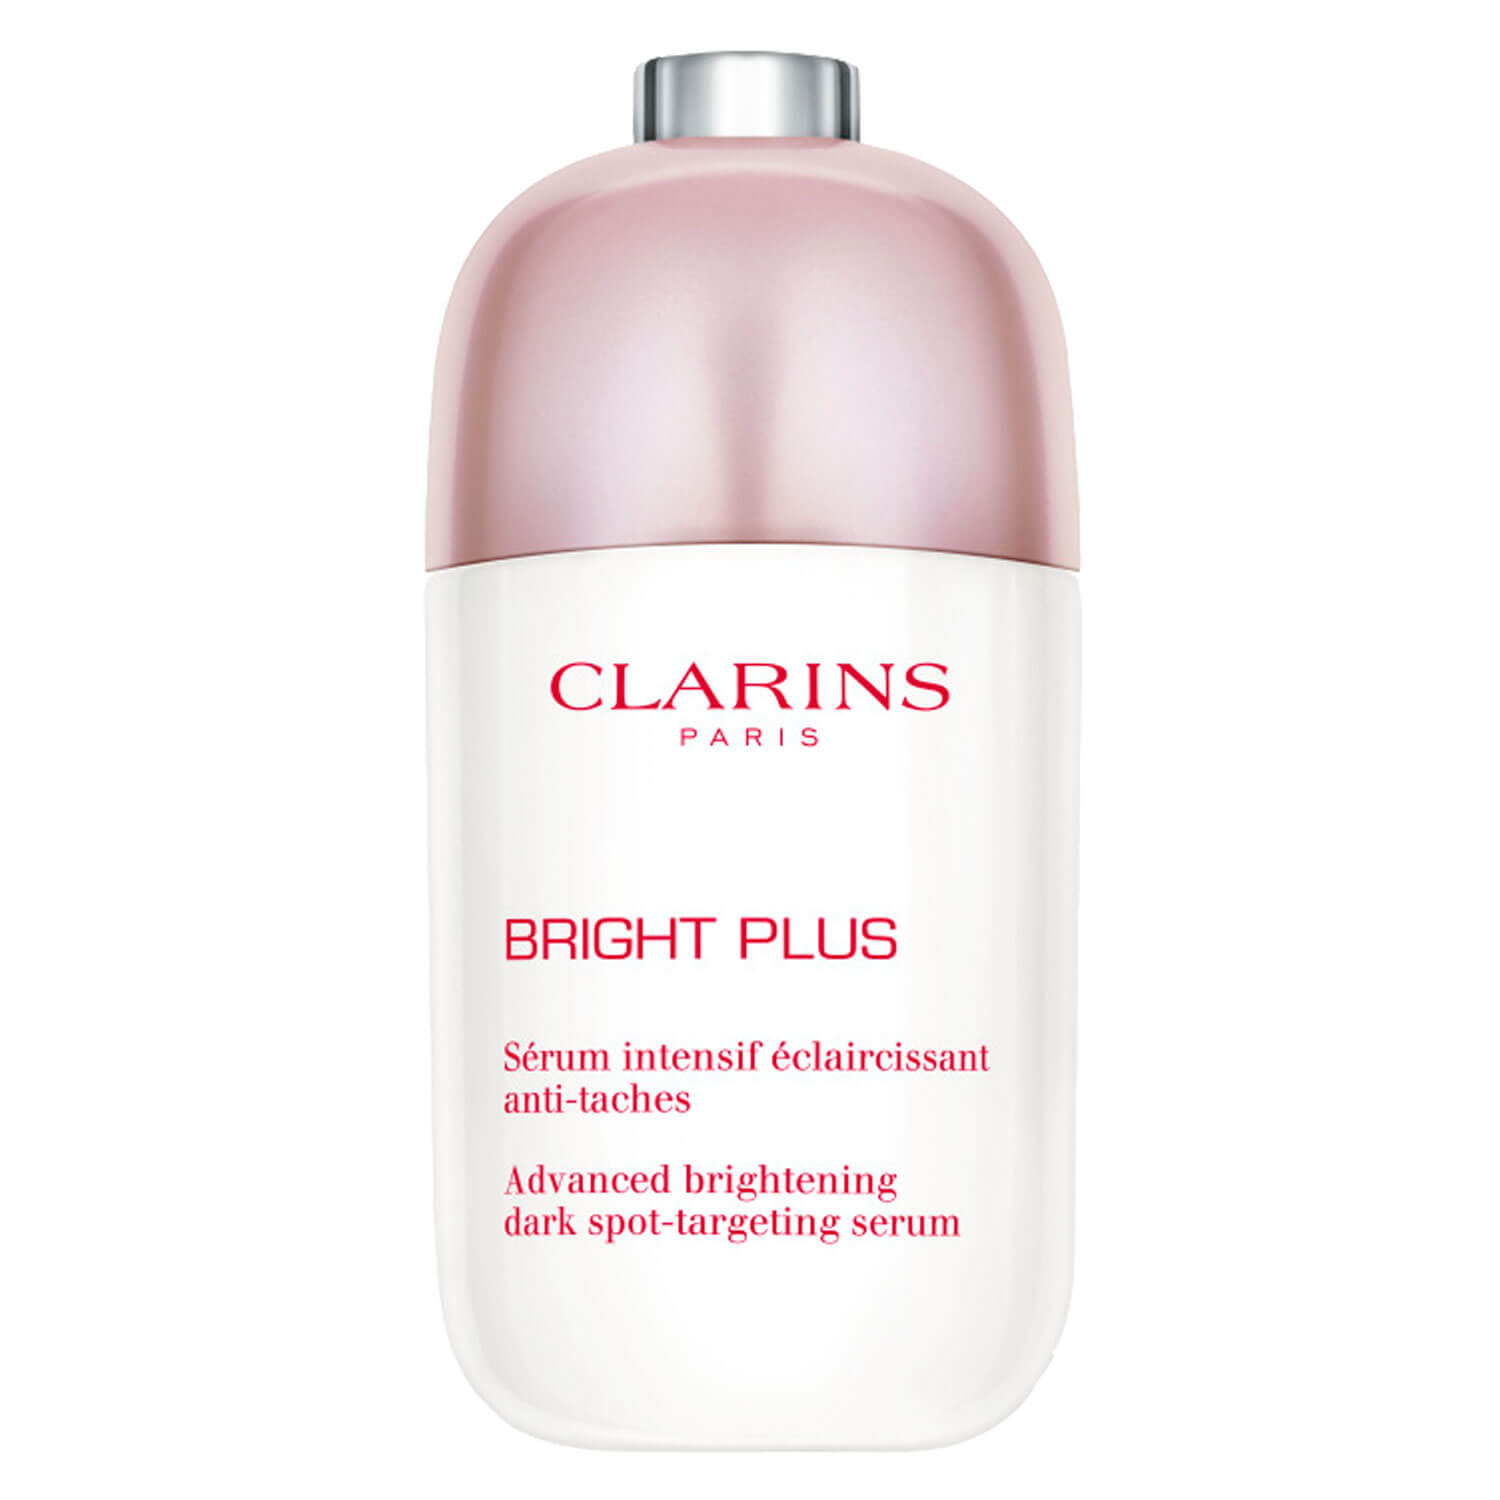 Clarins Skin - Bright Plus Sérum Intensif Éclaircissant Anti-Taches